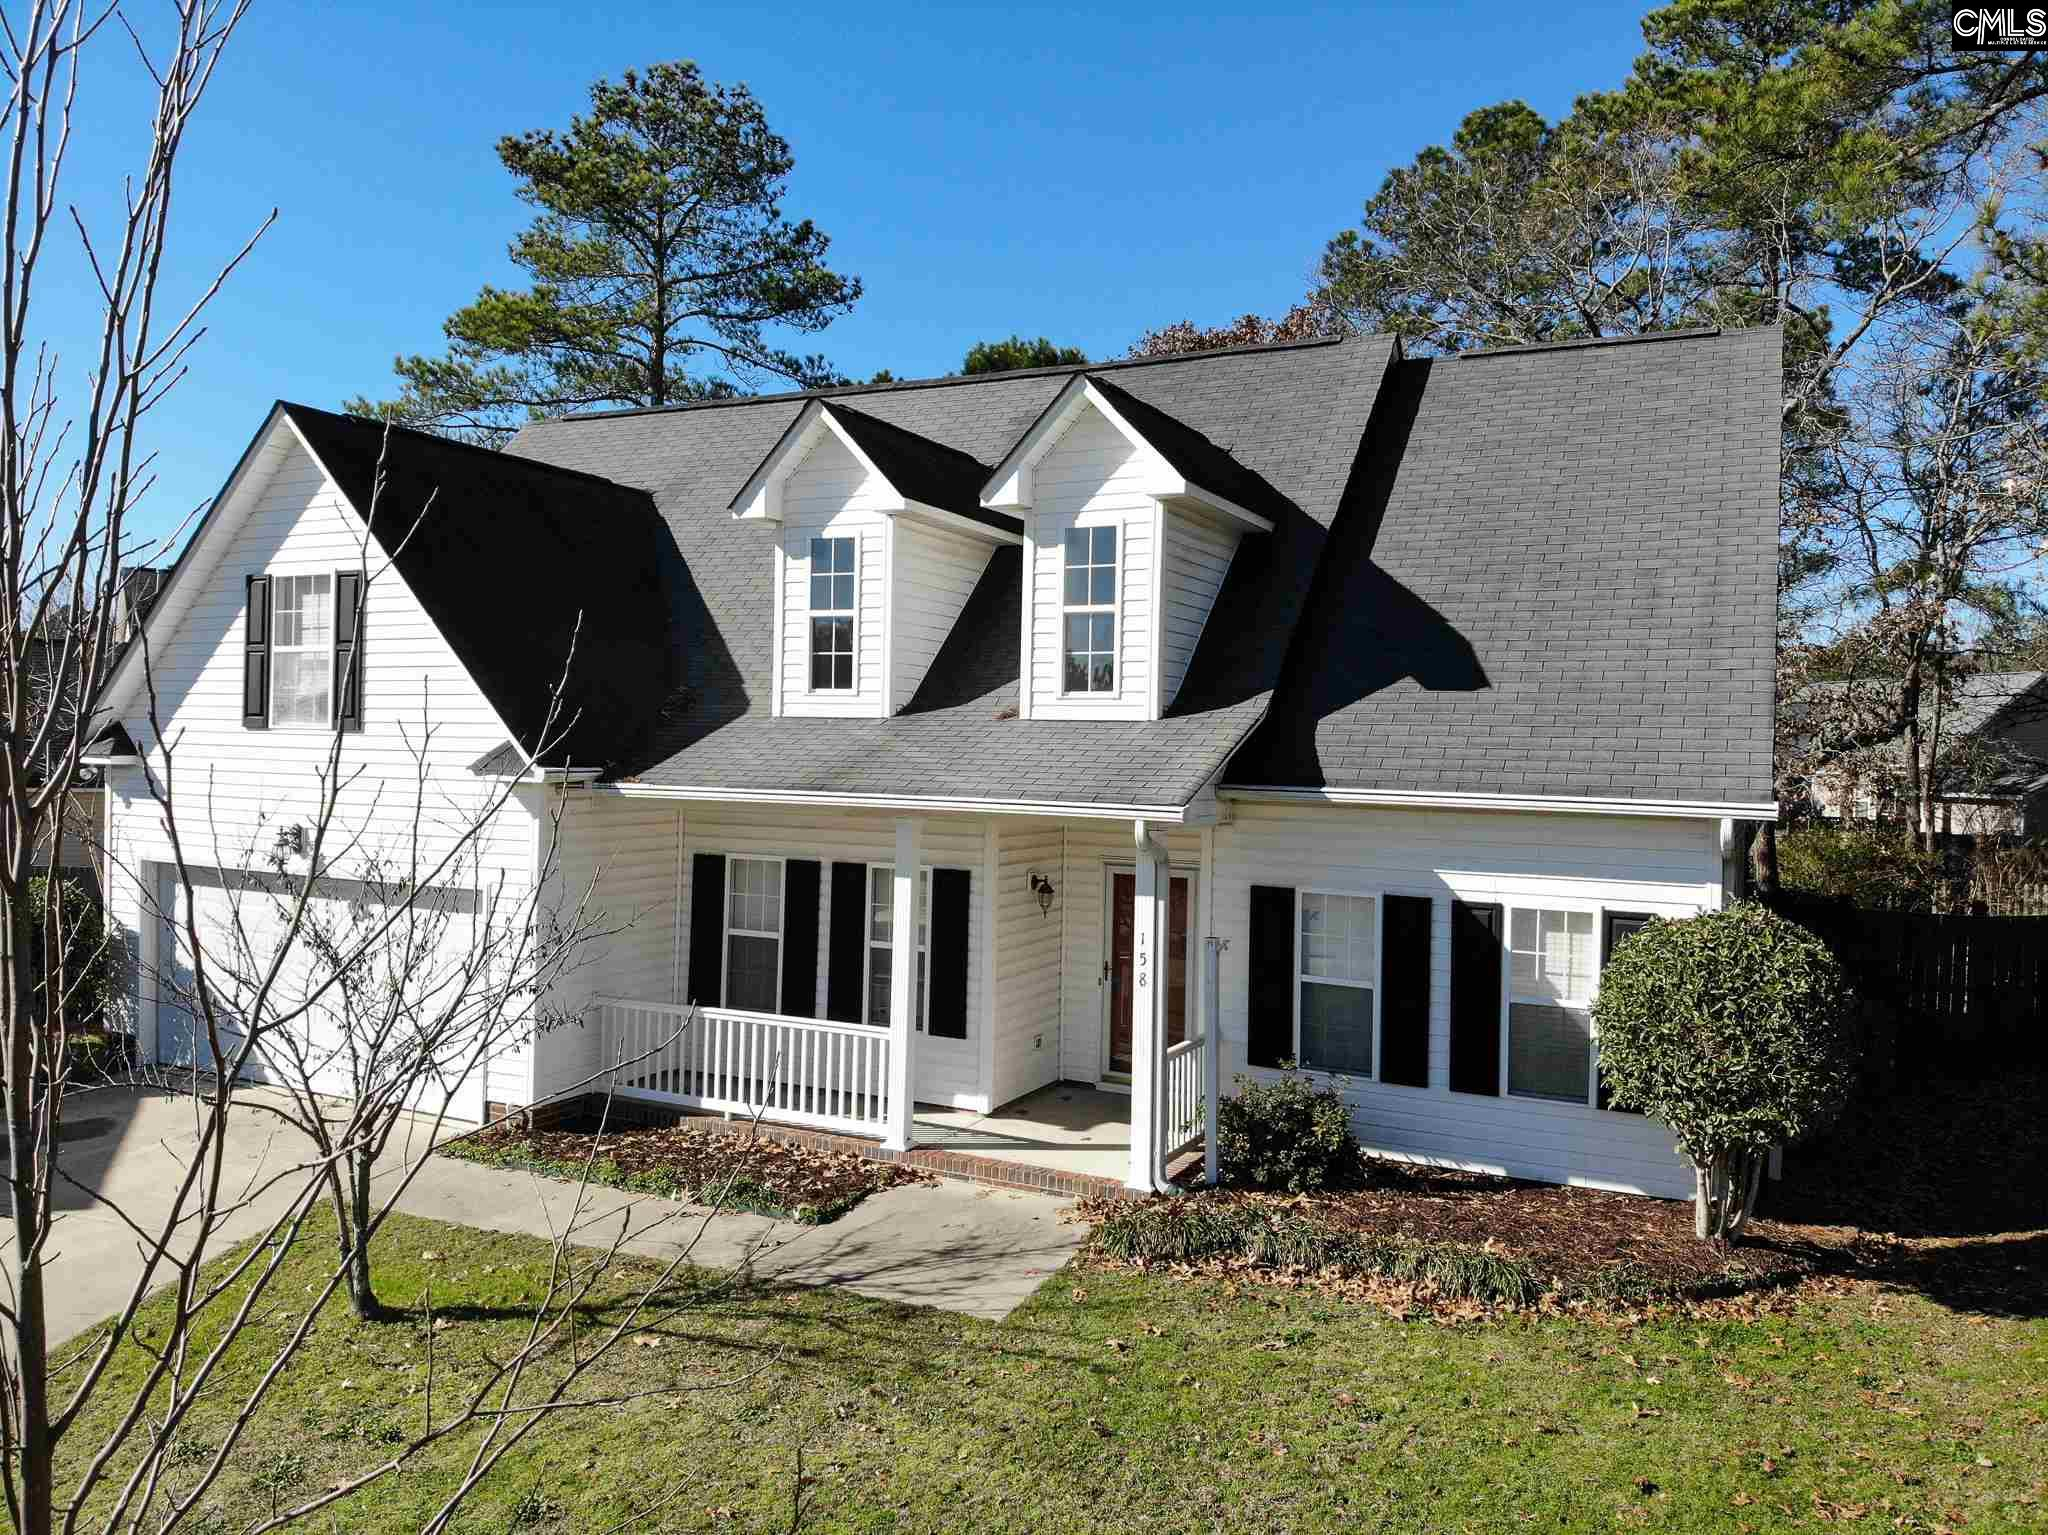 158 Summer Pines Blythewood, SC 29016